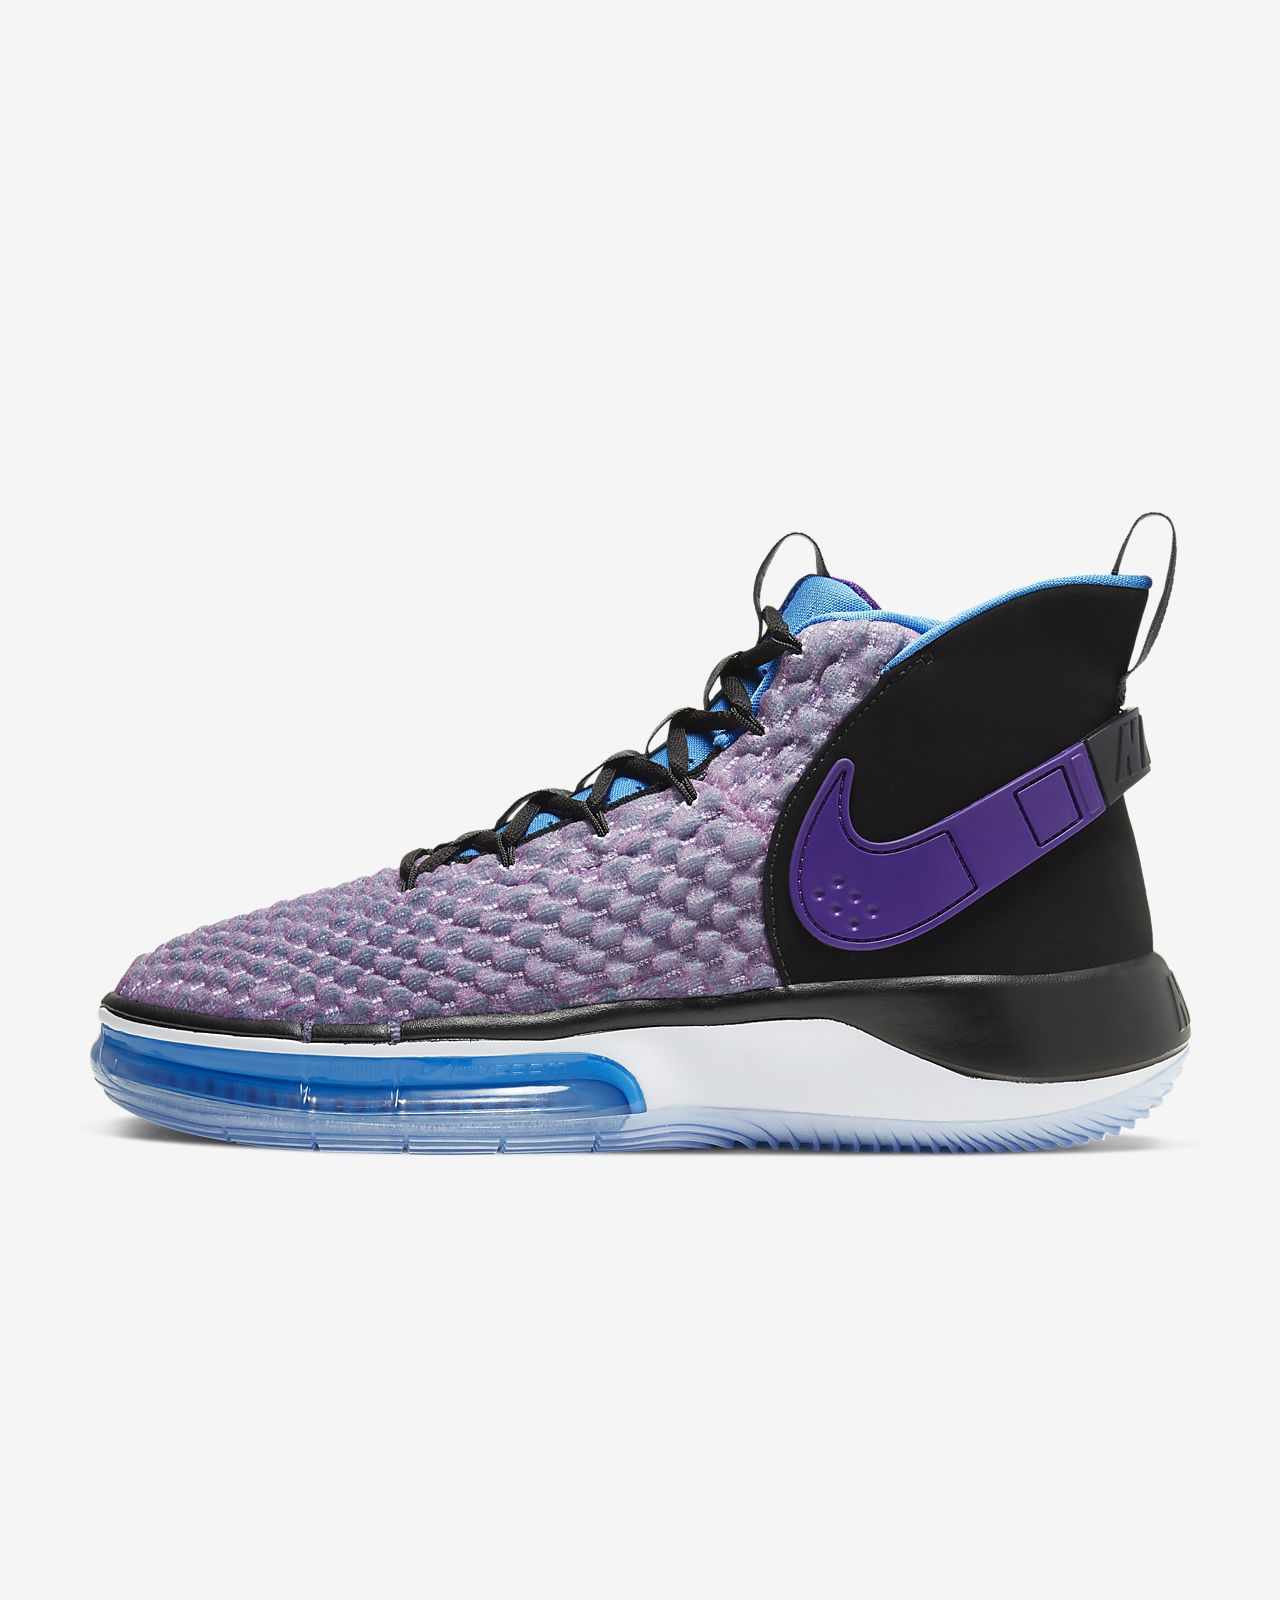 nike basketball shoes Nba shoes nike shoes